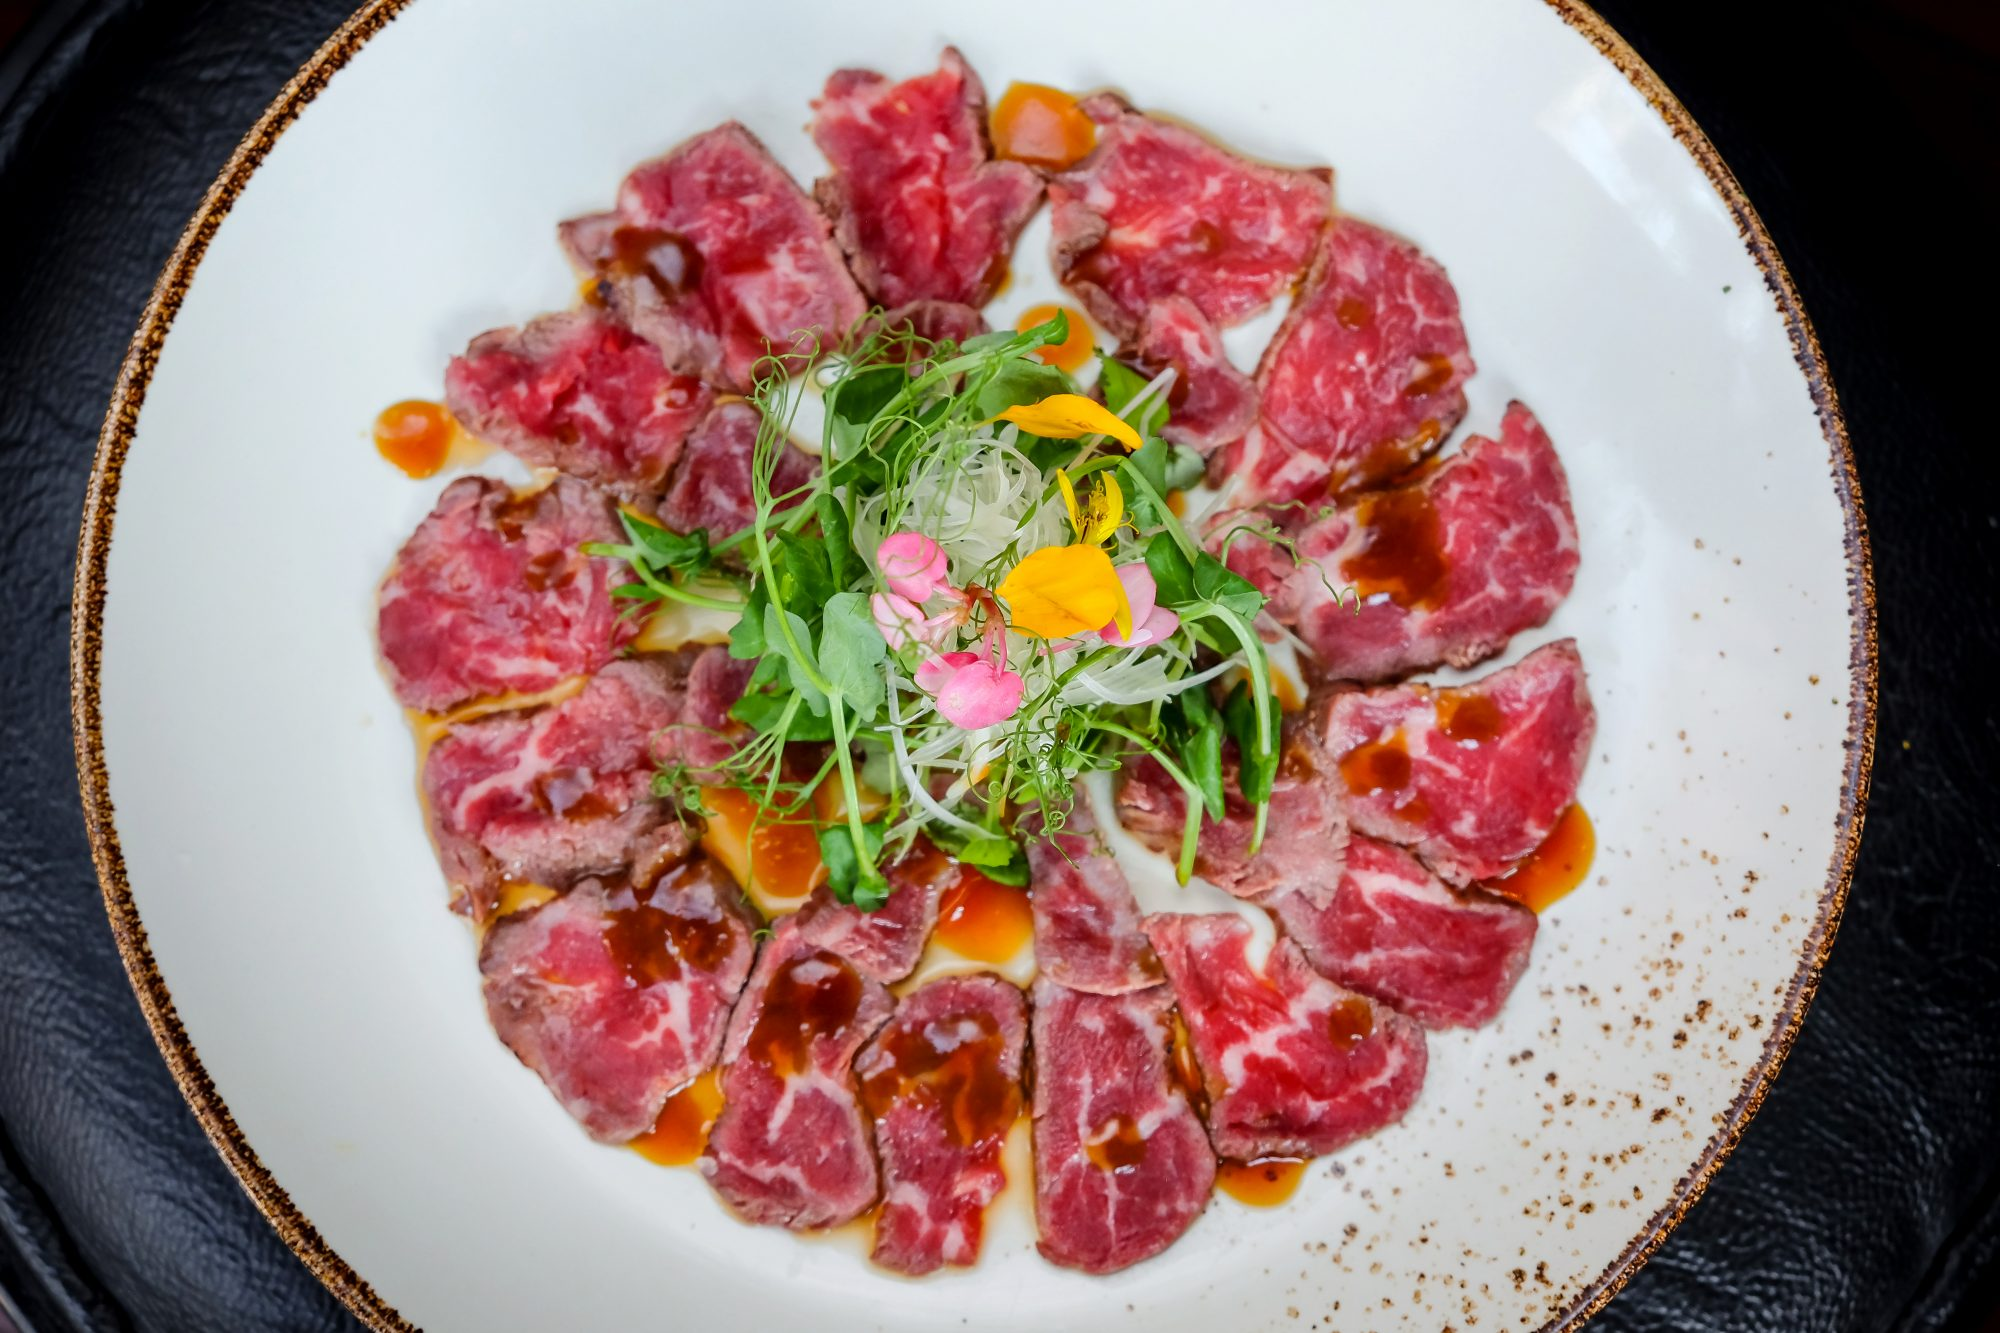 Beef carpaccio Getty 1/17/20